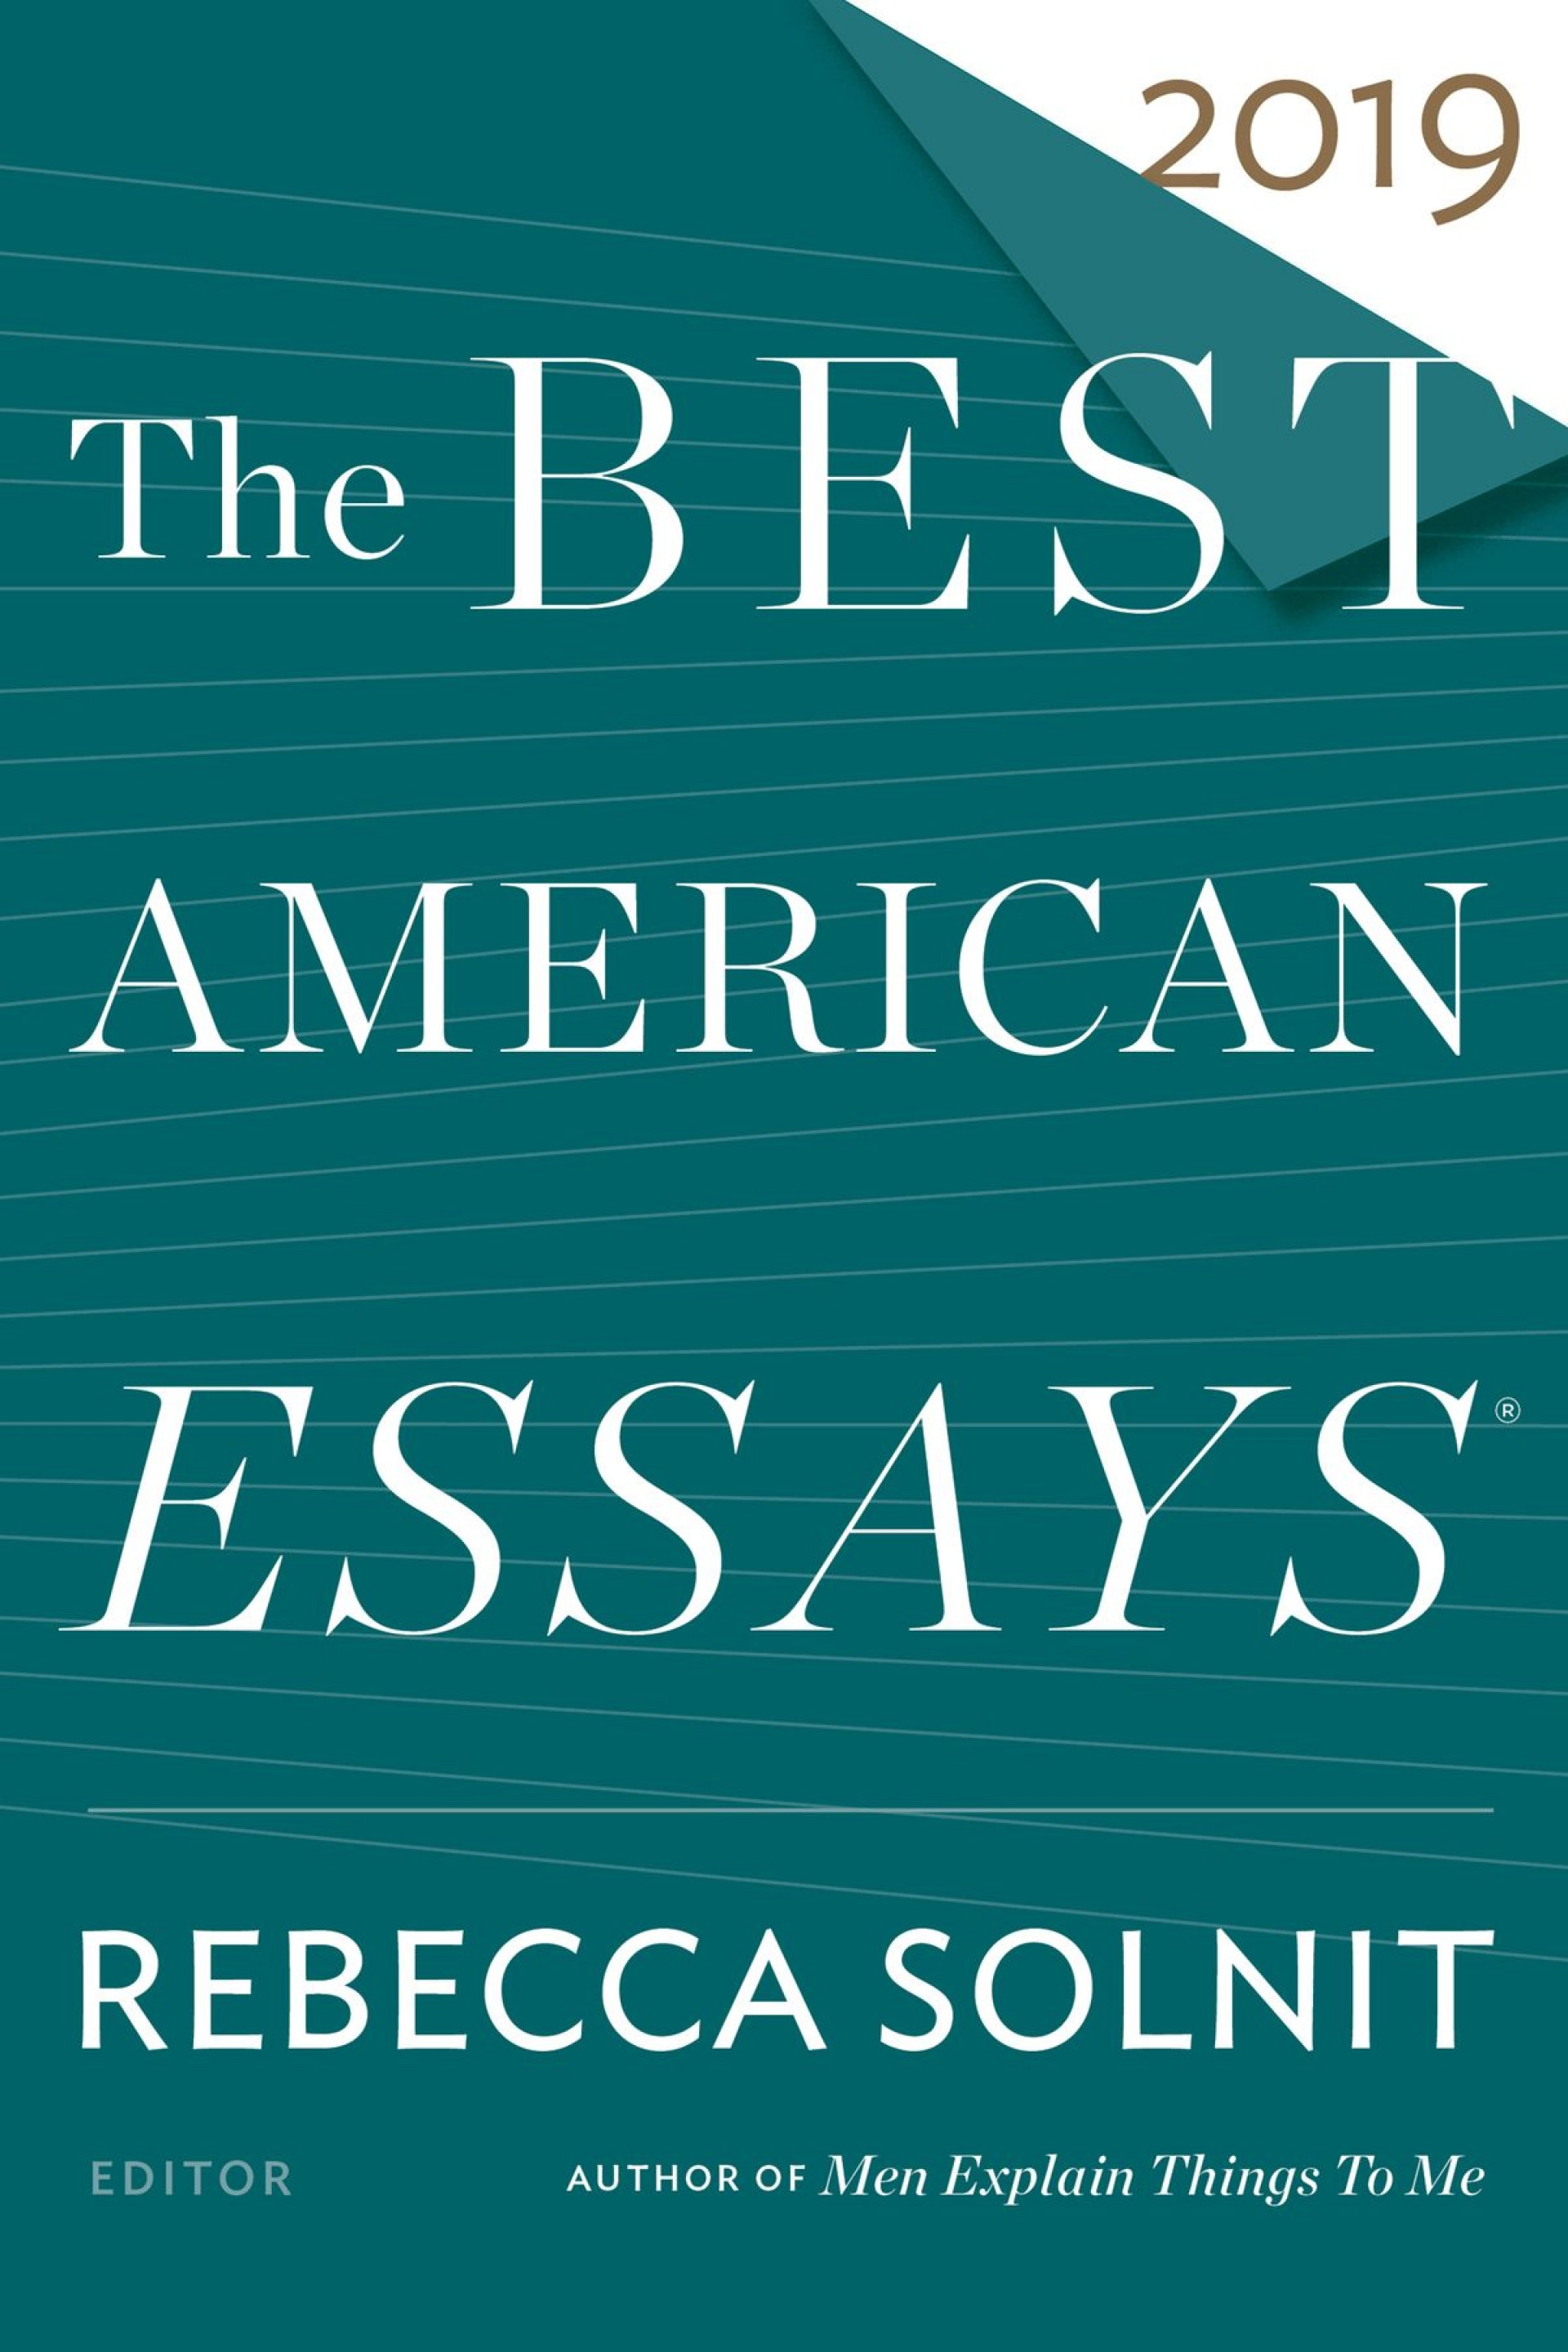 007 The Best American Essays Essay Striking 2017 Pdf Submissions 2019 Of Century Table Contents 1920